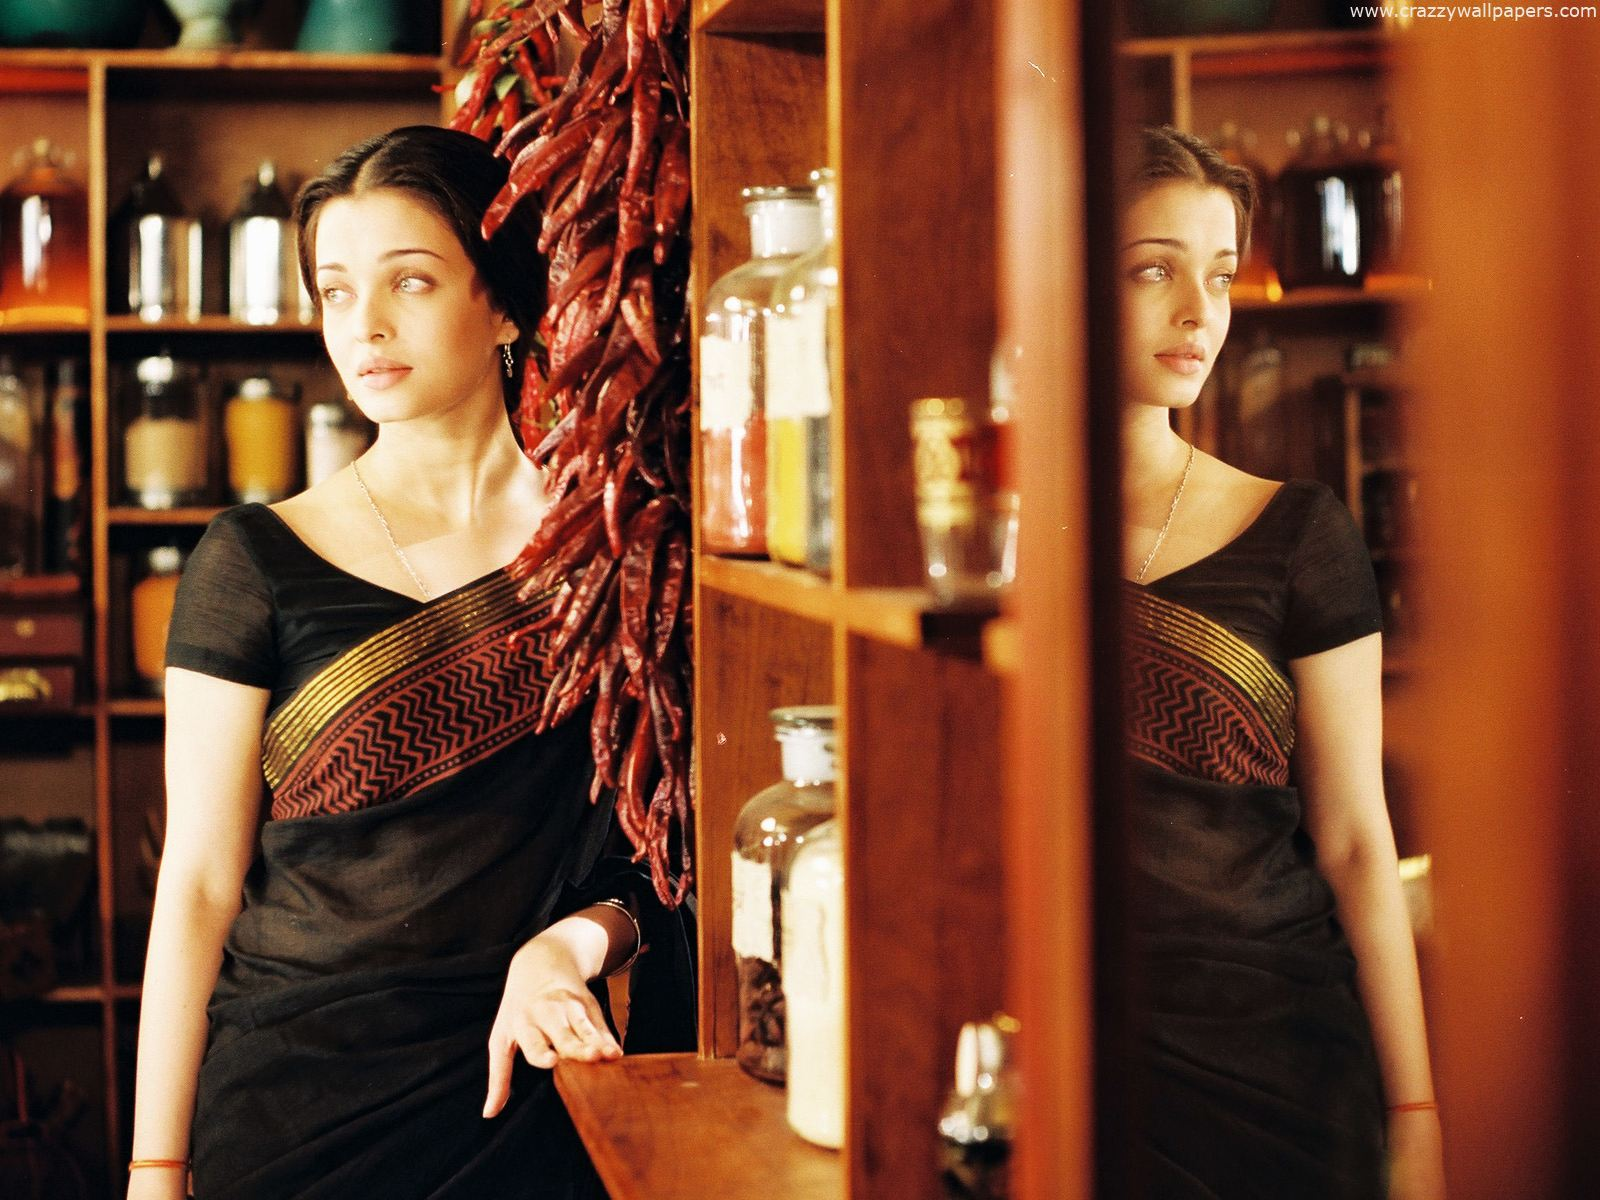 Aishwarya rai homely saree 173.54 Kb